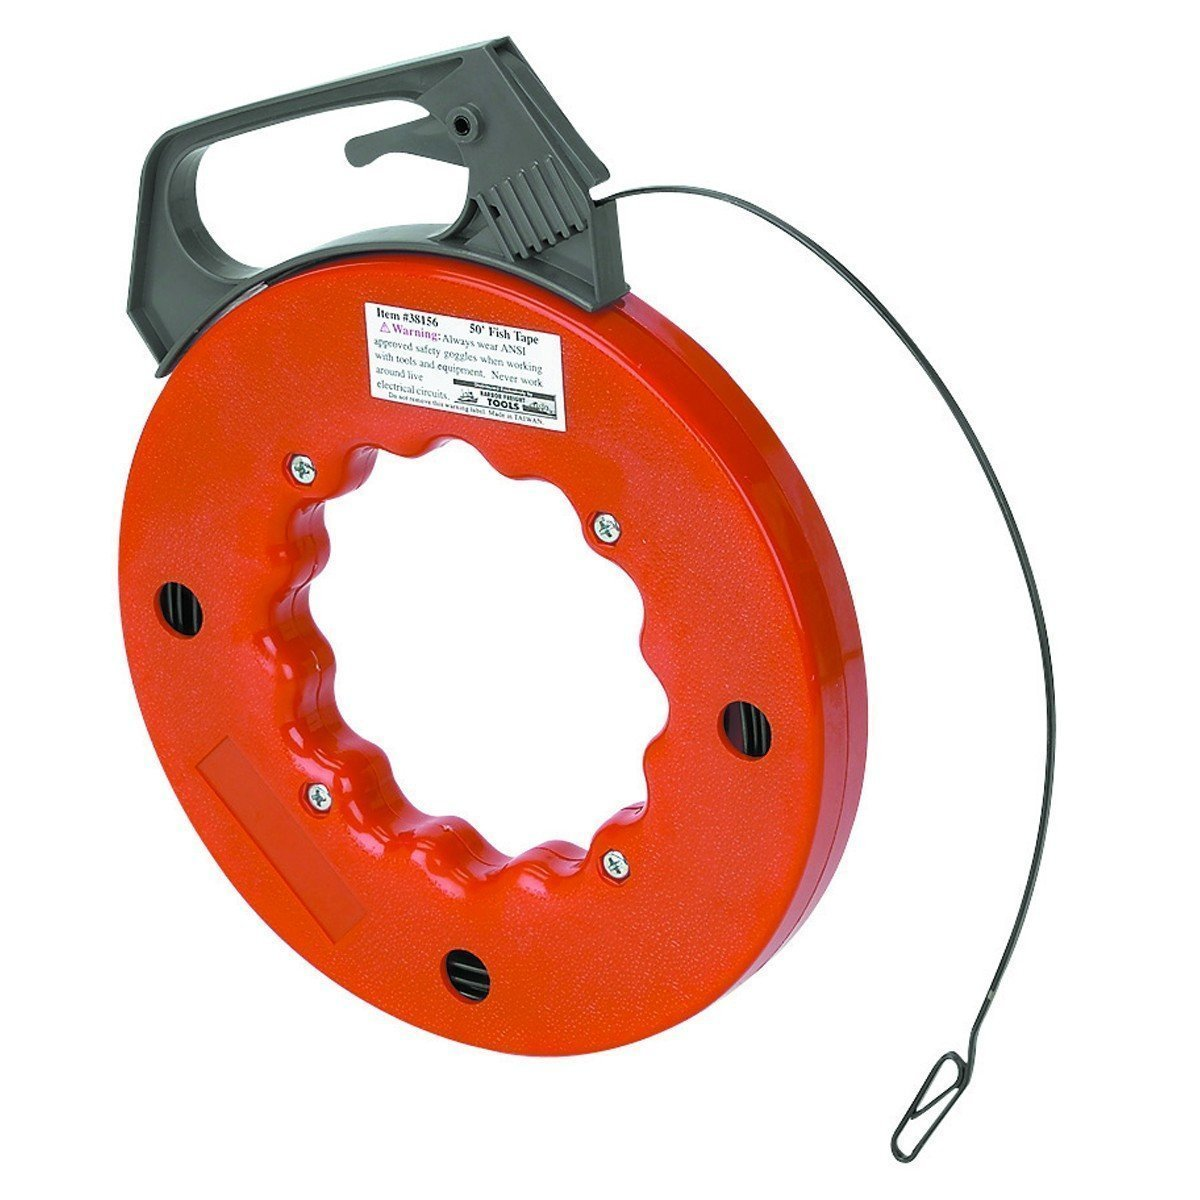 """Electrical Fish Tape Reel - 50 Foot Reach - Impact Case for Electricians, Pull Communication Wire Cable Line From Drywall, Ceiling, Under Rug Conduit or Pipe- 1/2"""" W x 1/16"""" Thick Tape Reel By Katzco Kayco USA CECOMINOD071489"""